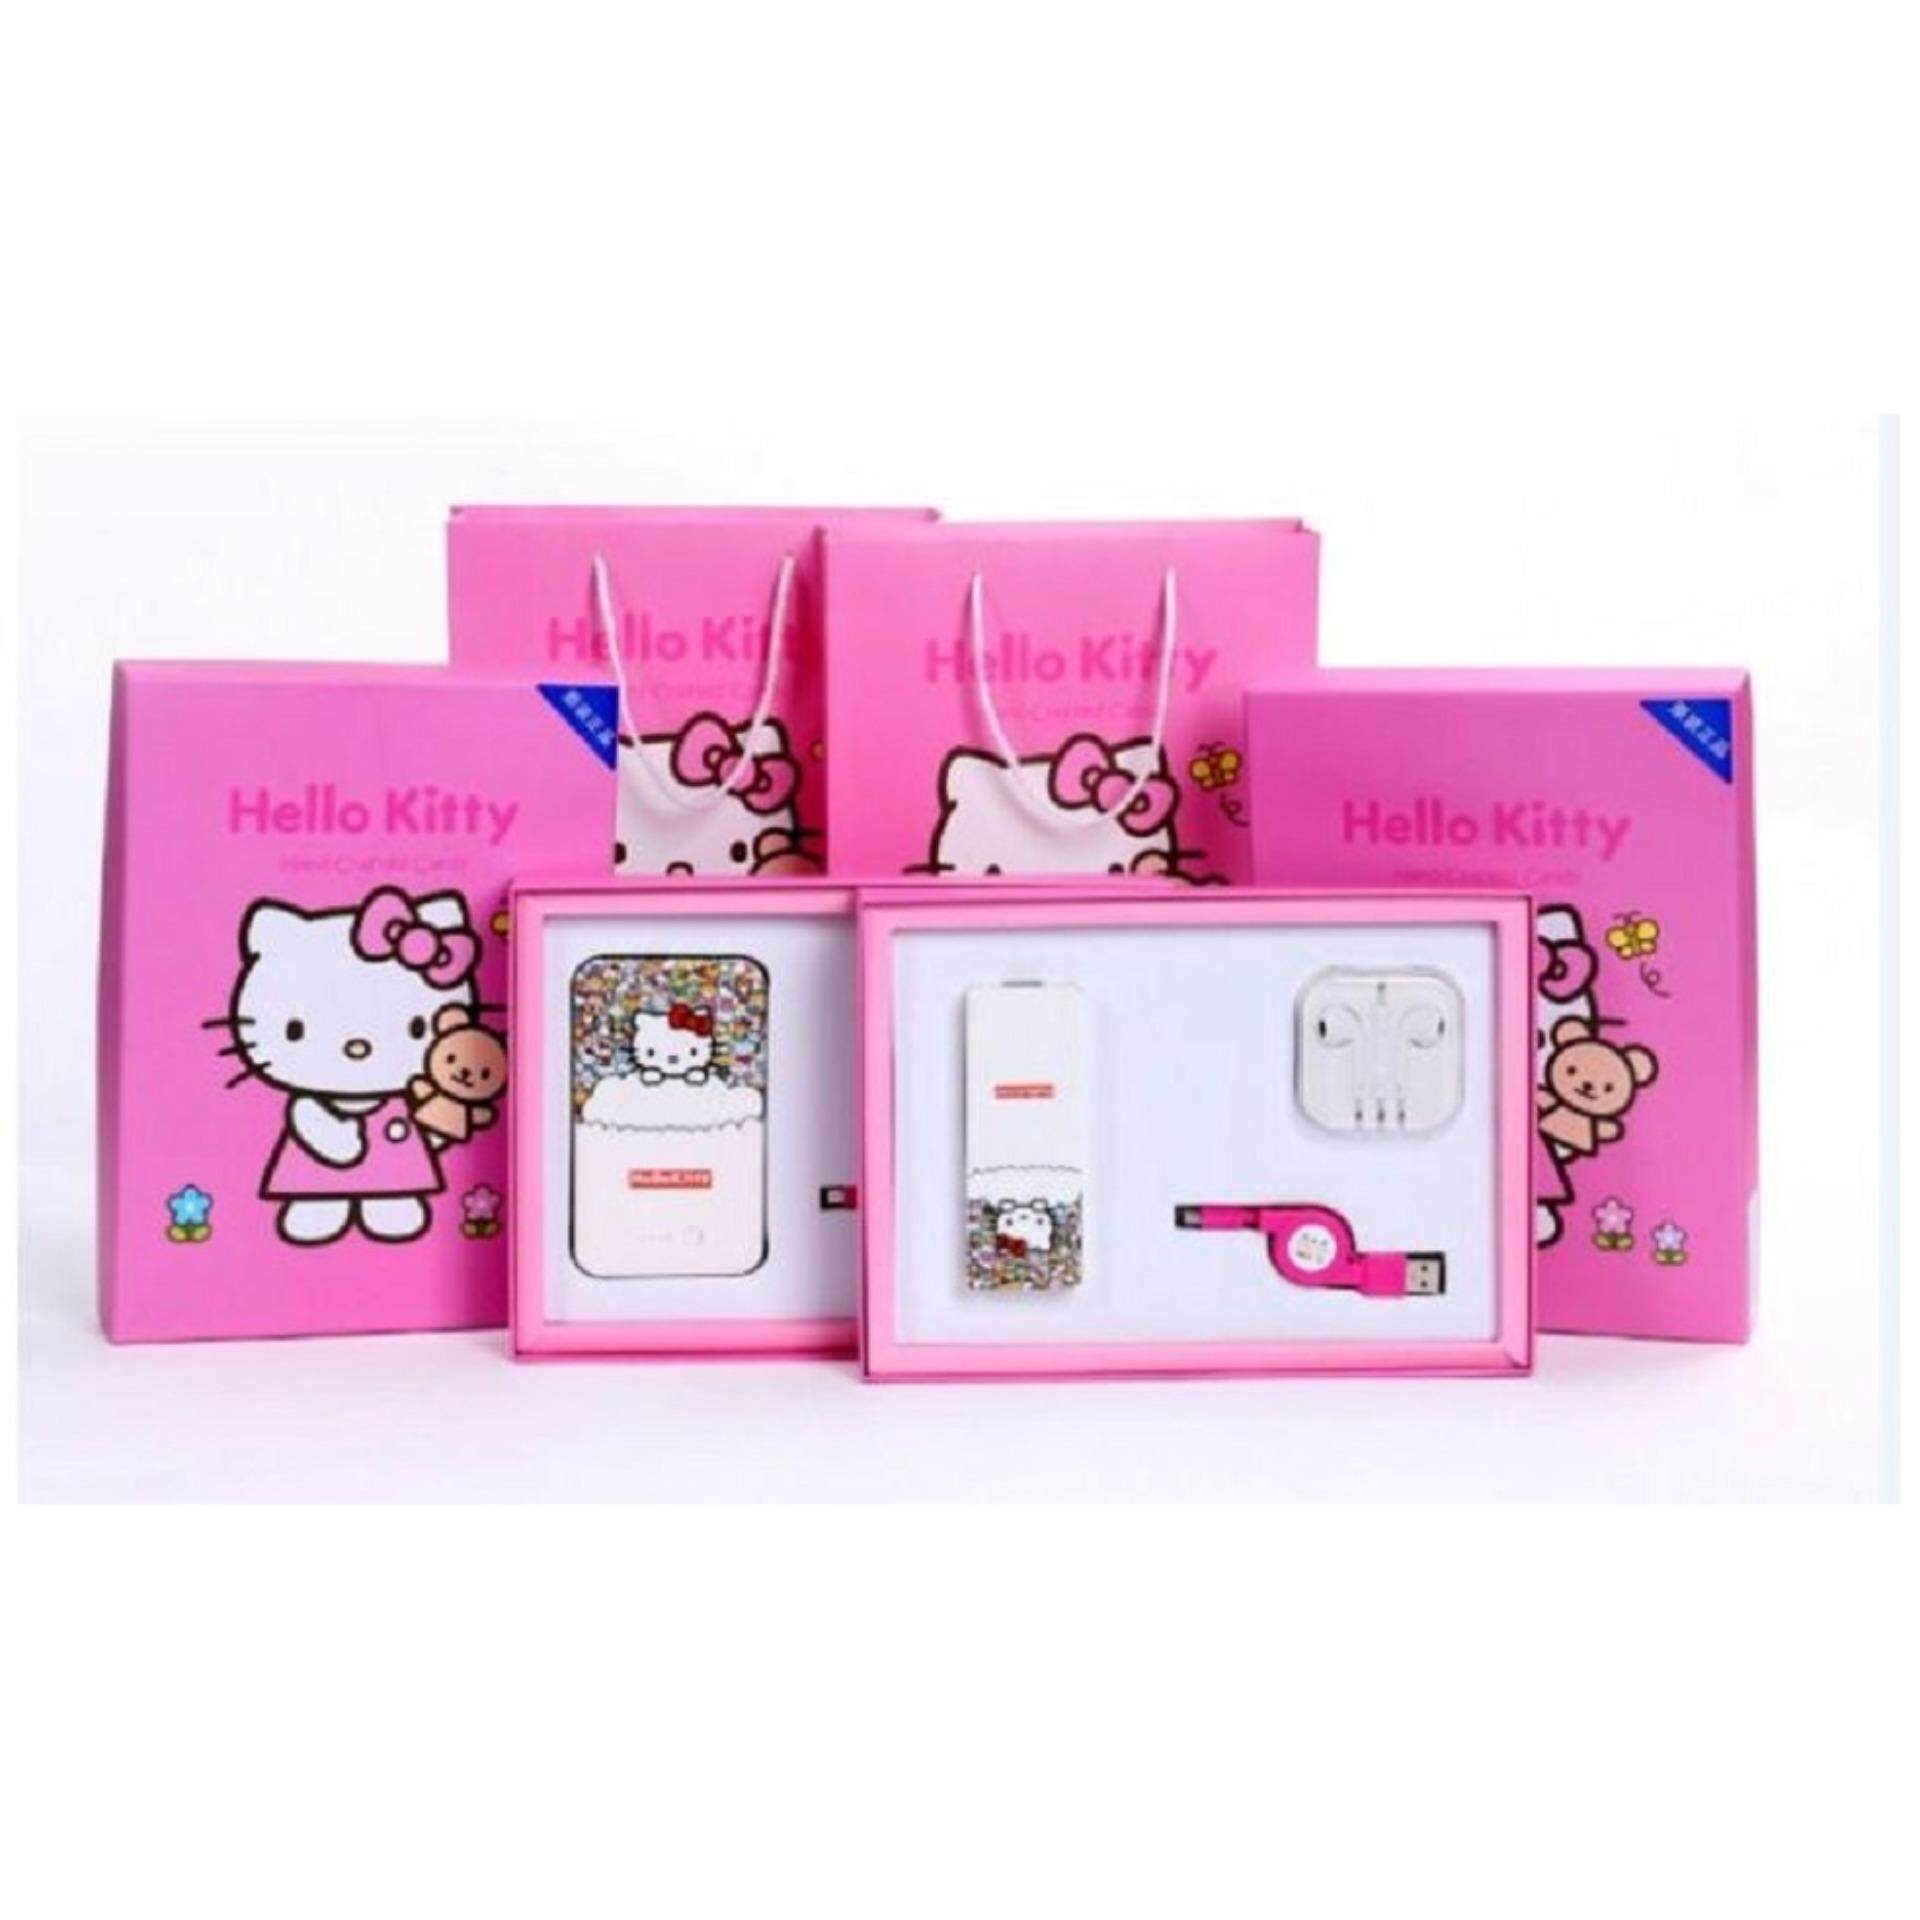 Hello Kitty Premium 8800 mAh Powerbank, Earphone, Date Cable,Paper Bag